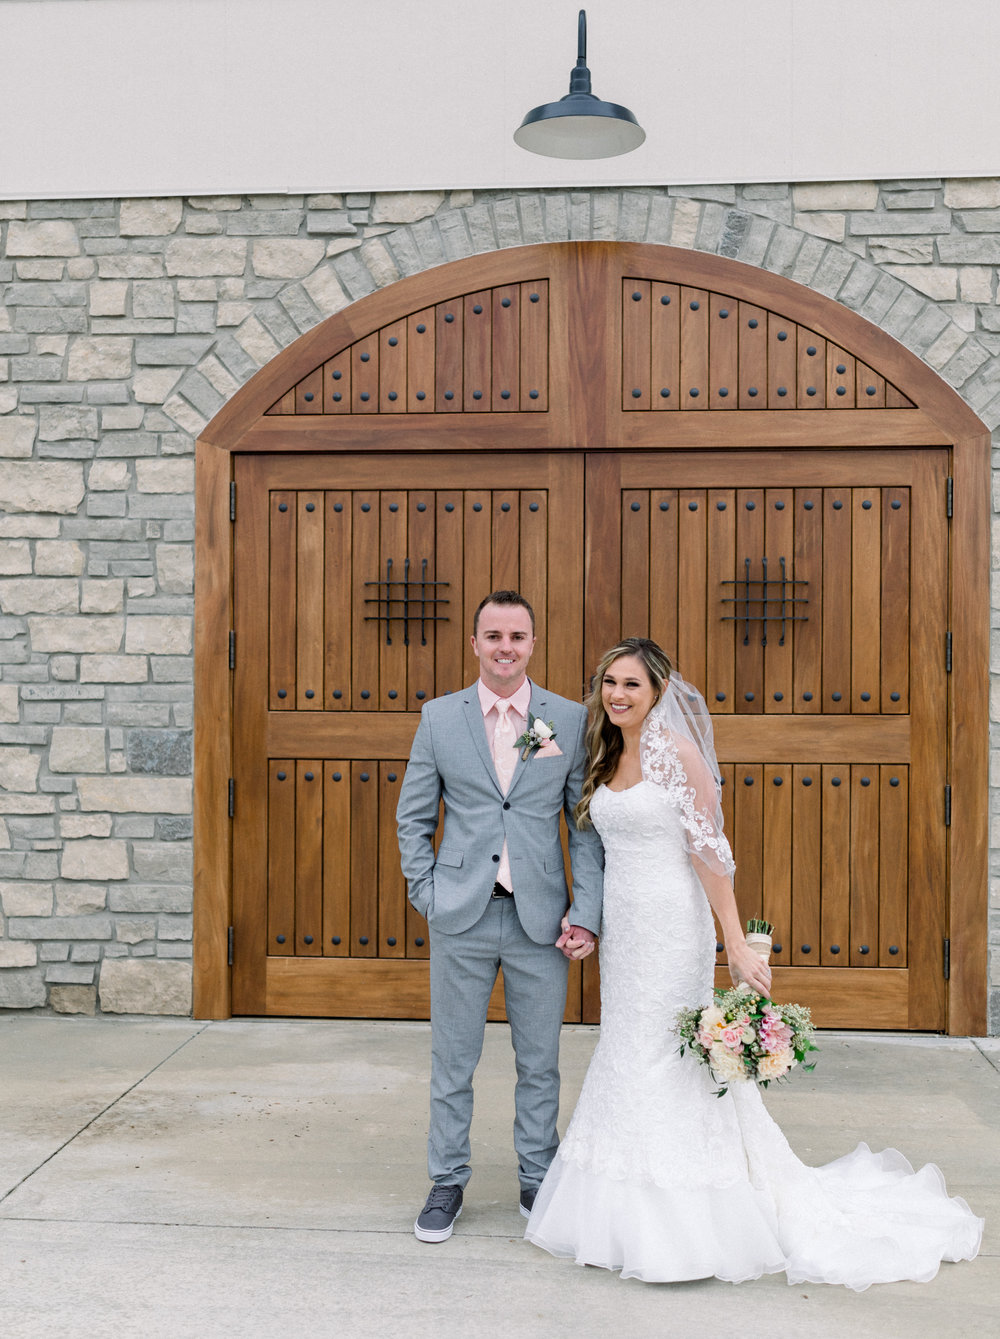 Baker wedding (140 of 850).jpg